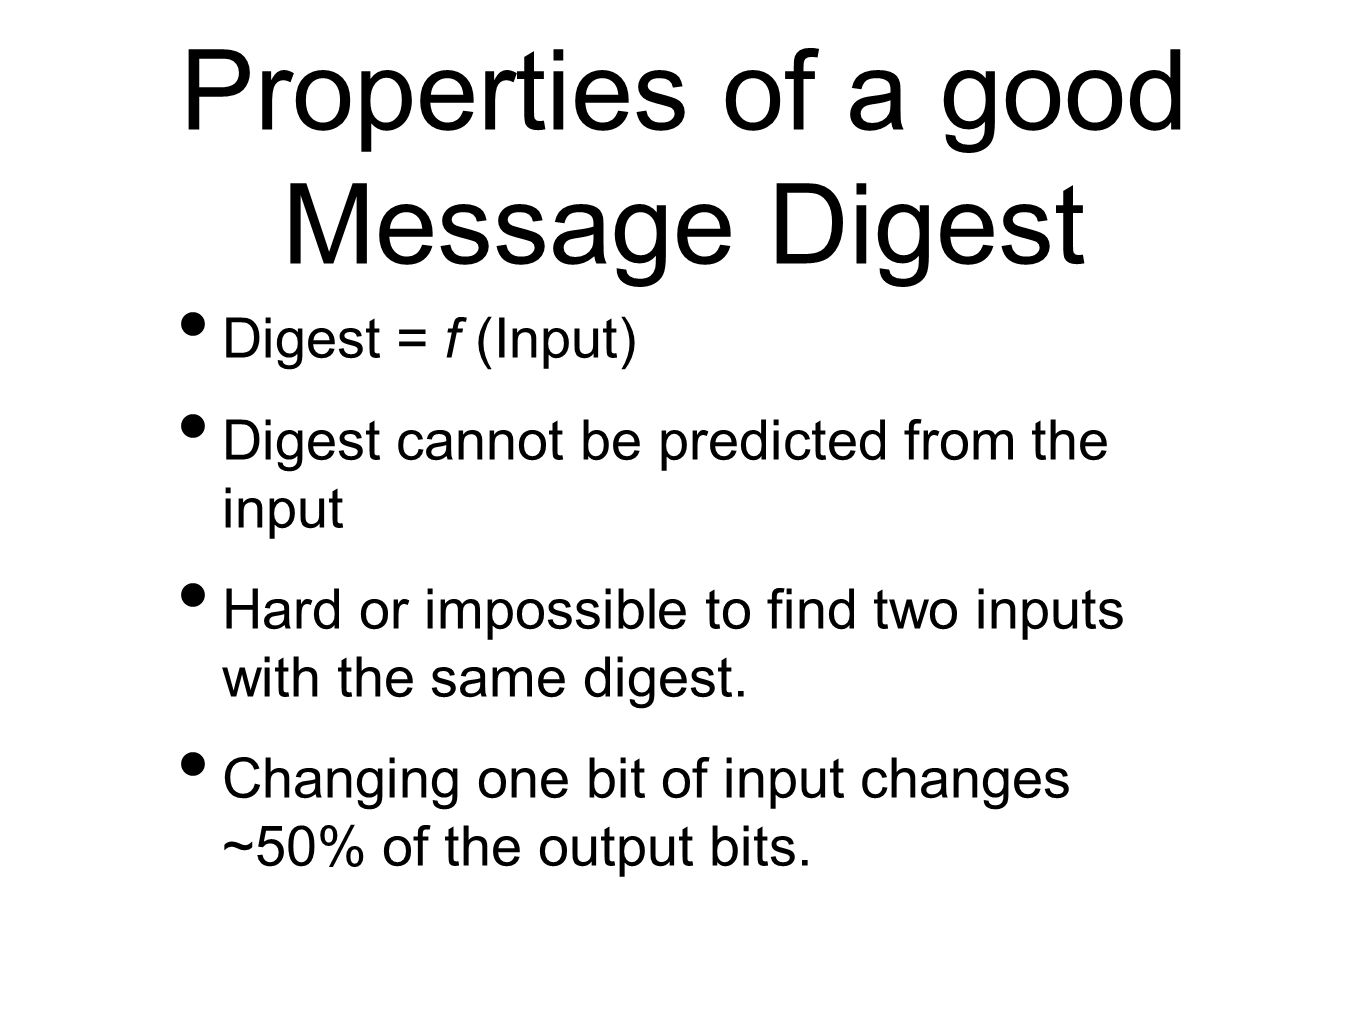 Digest = f (Input) Digest cannot be predicted from the input Hard or impossible to find two inputs with the same digest. Changing one bit of input cha